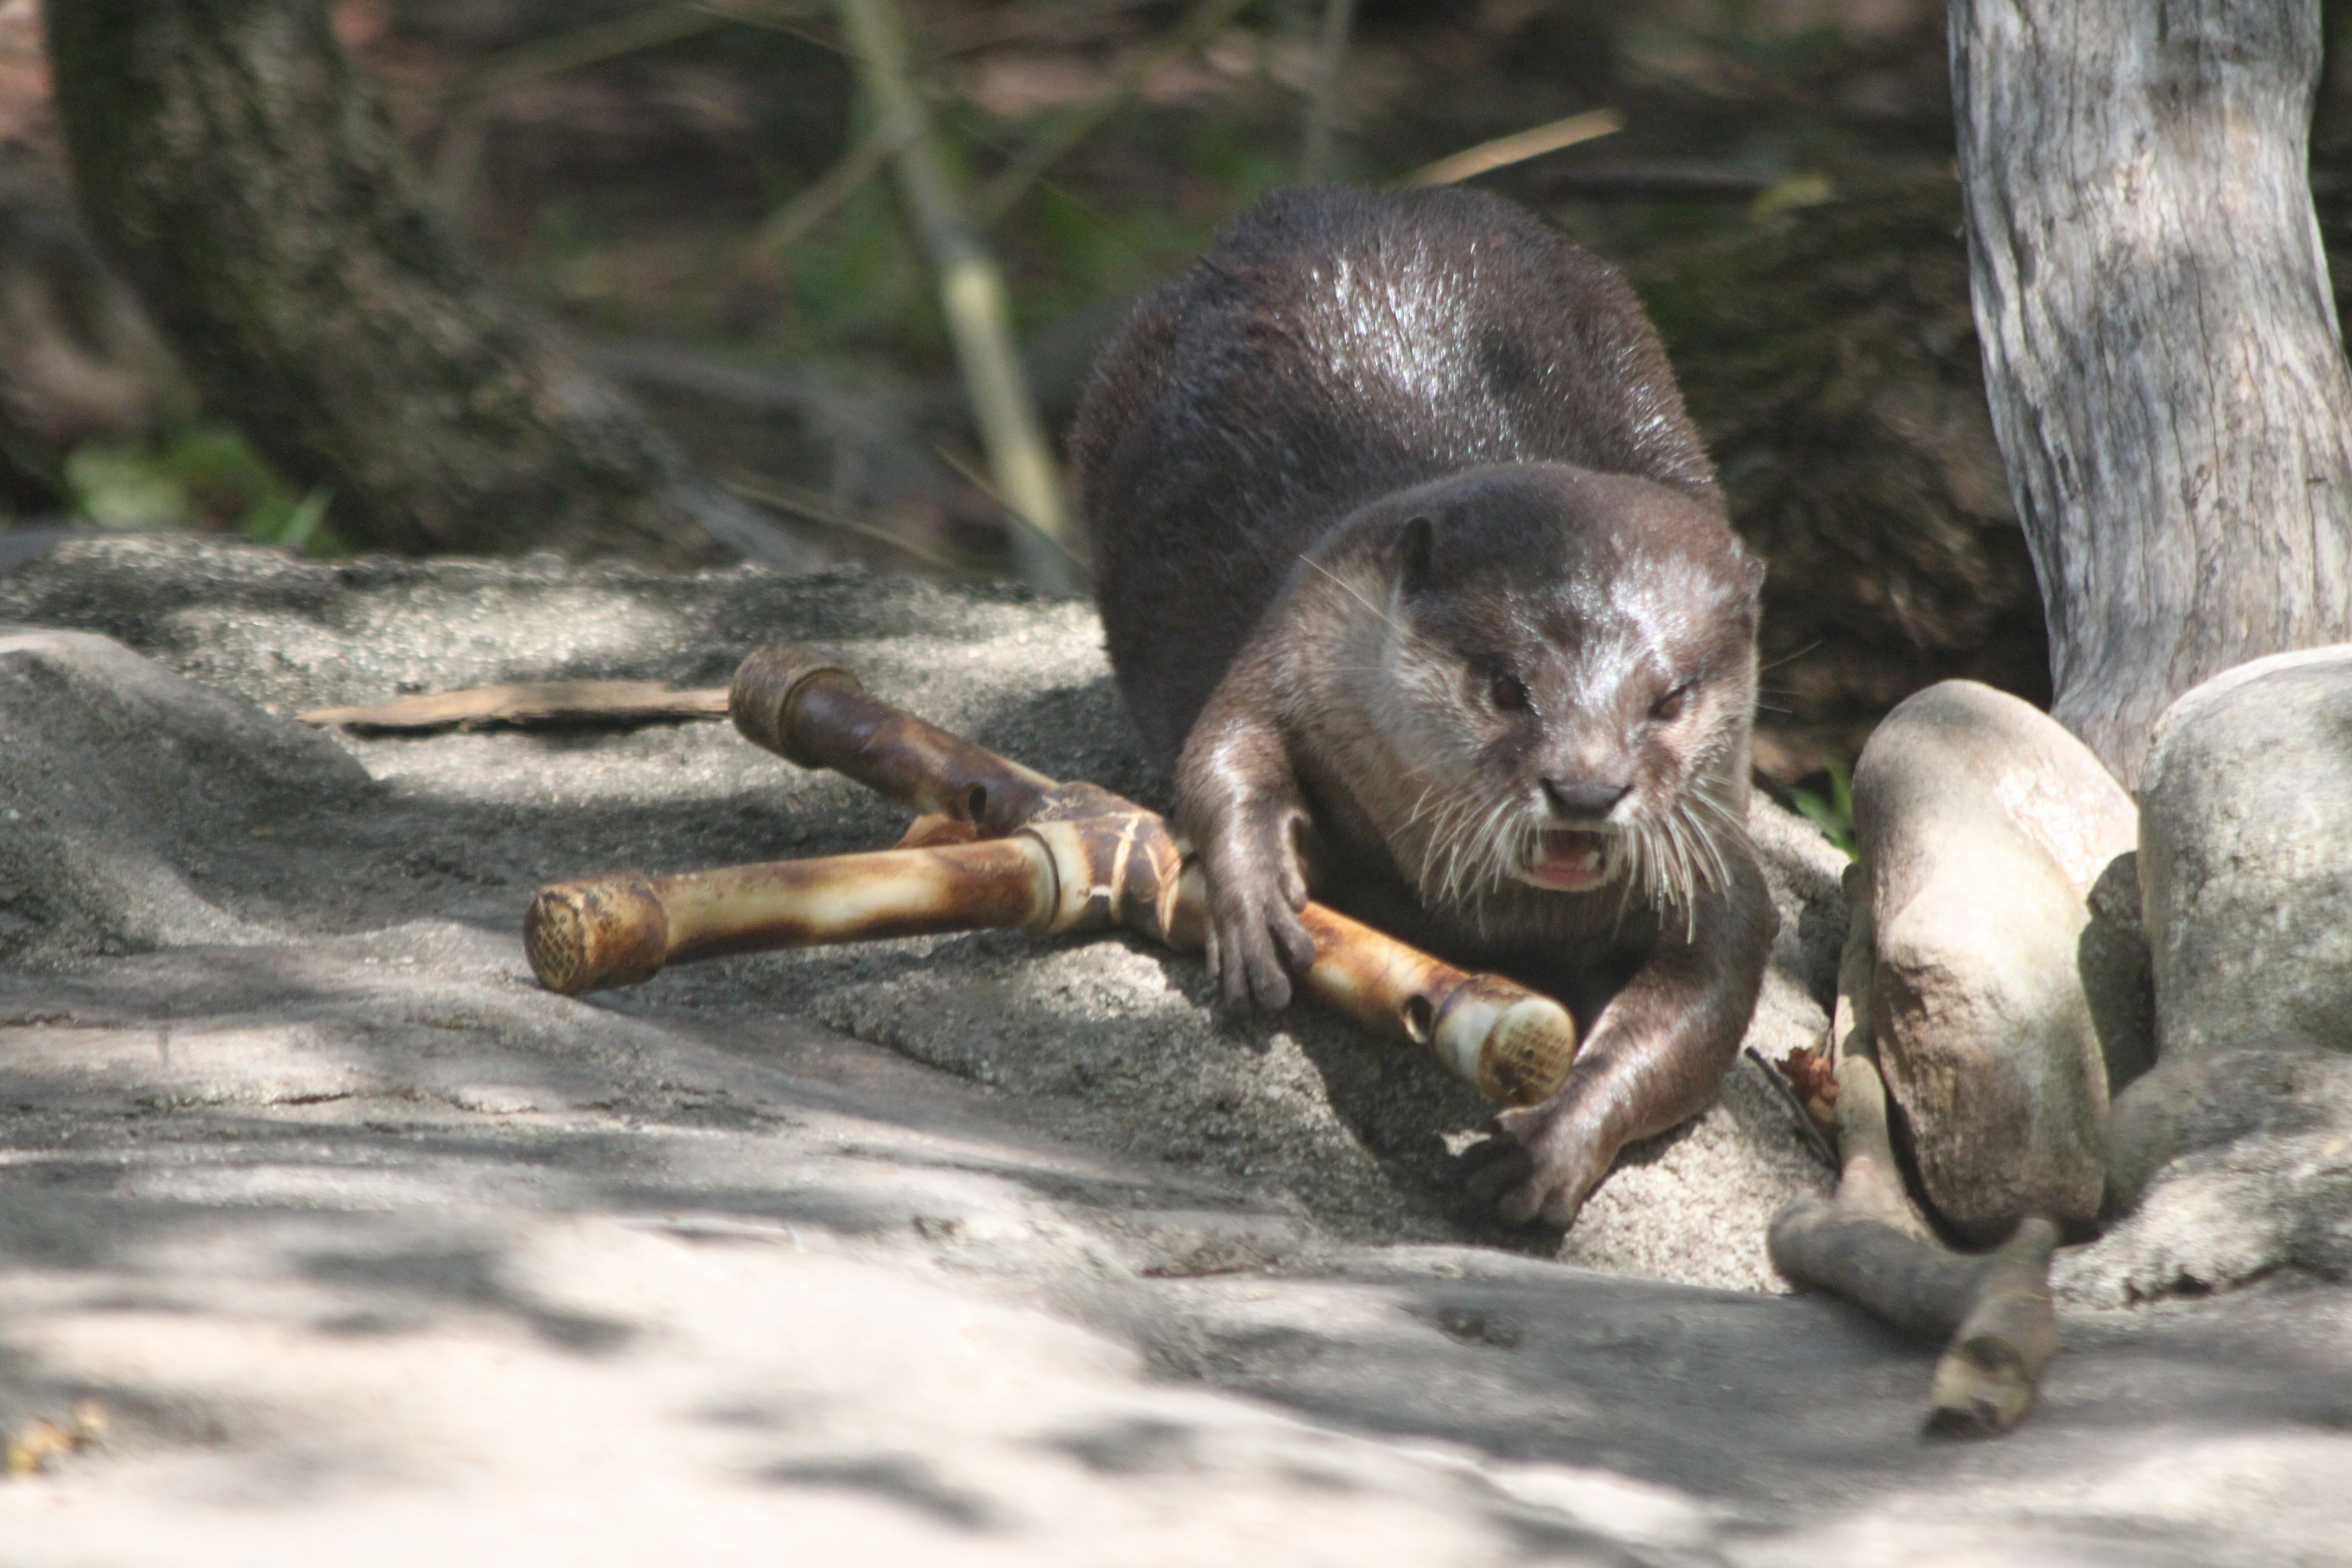 Enrichment (otters)